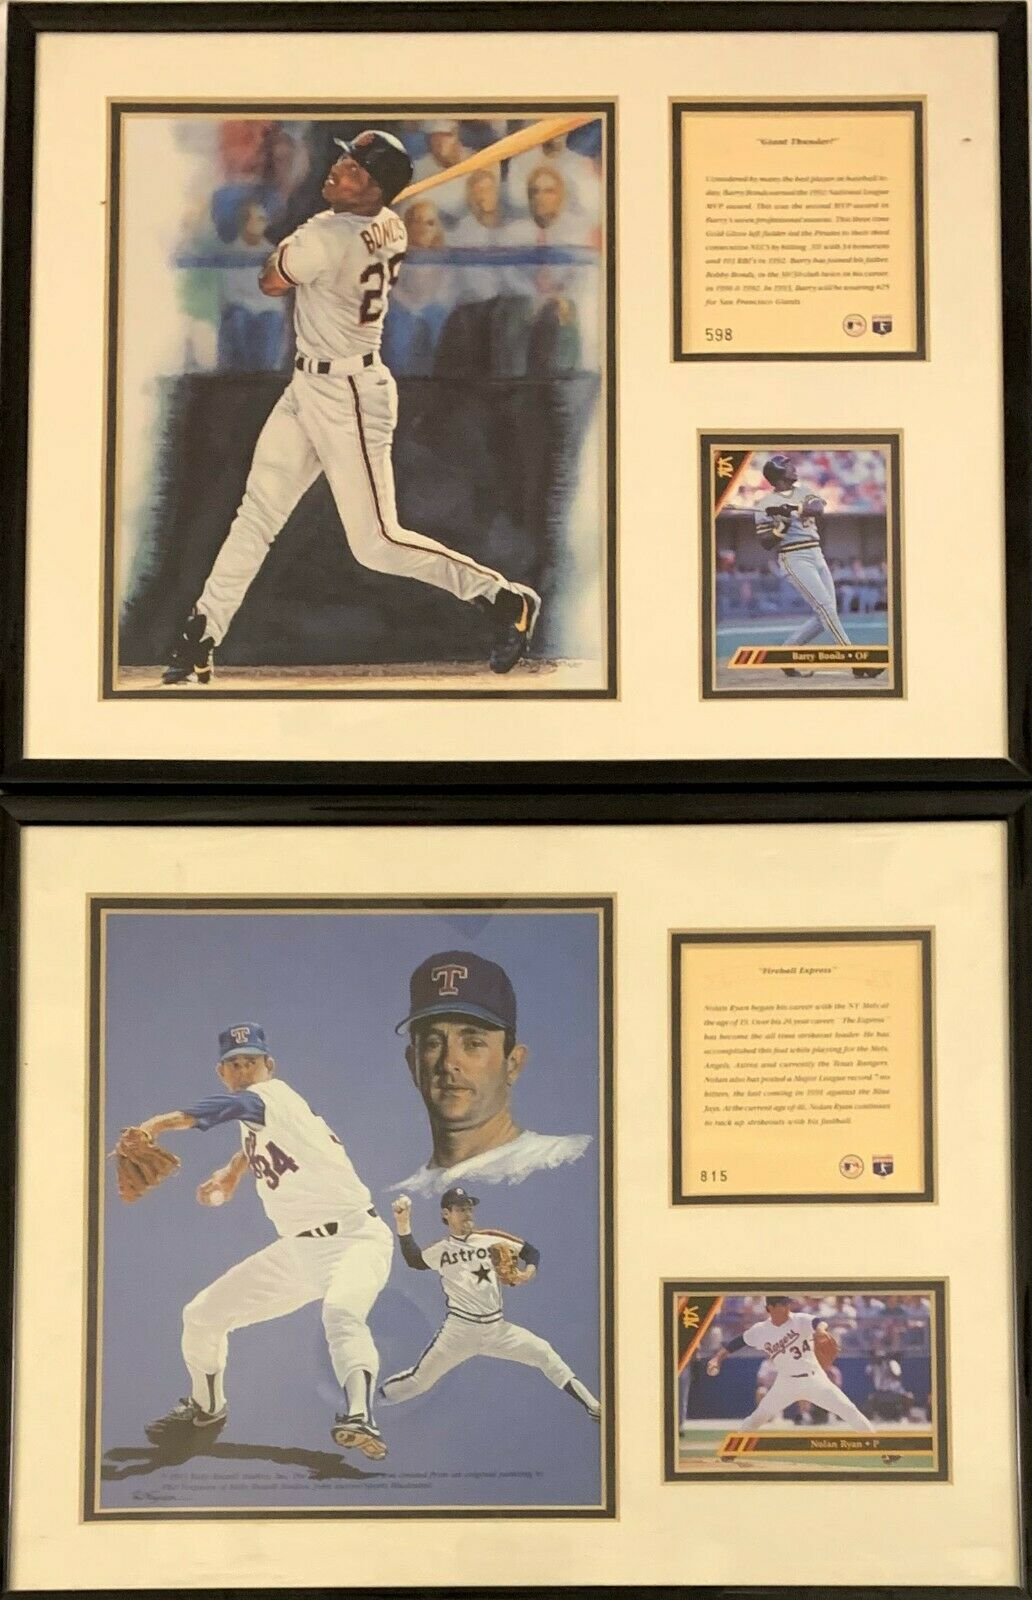 Barry Bond and Nolan Ryan Framed Photos with Cards and Note